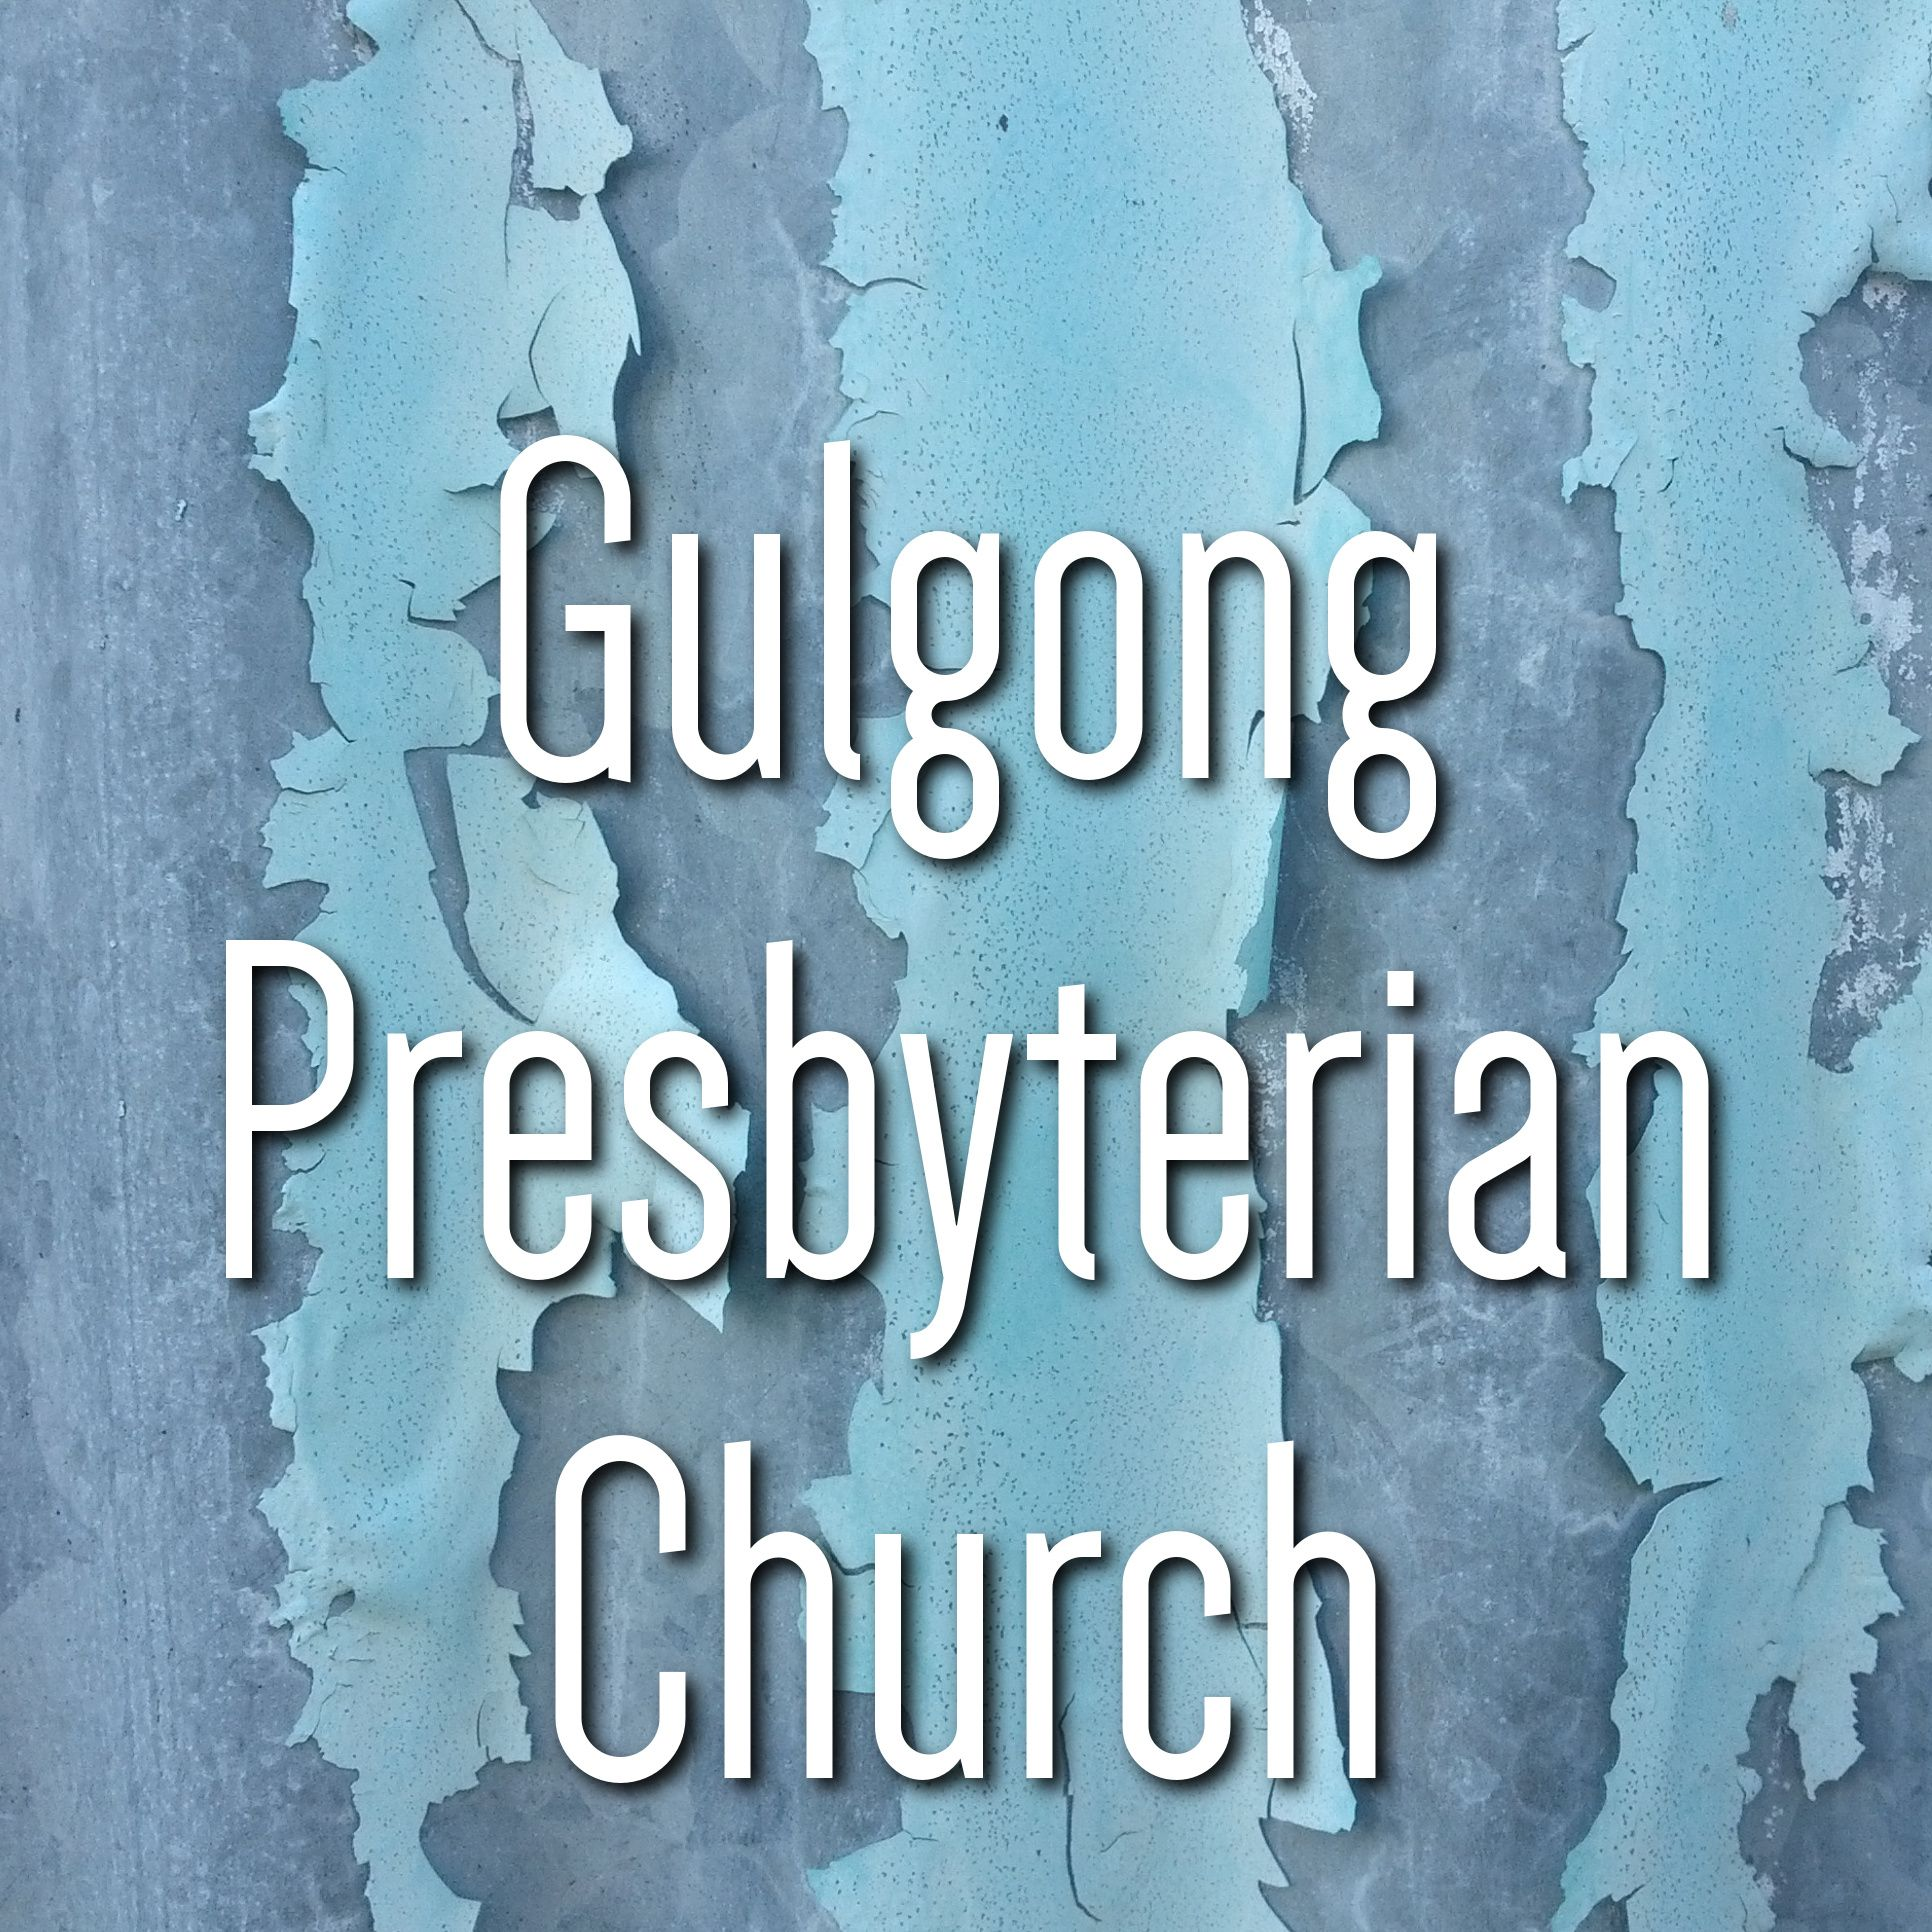 Gulgong Presbyterian Church